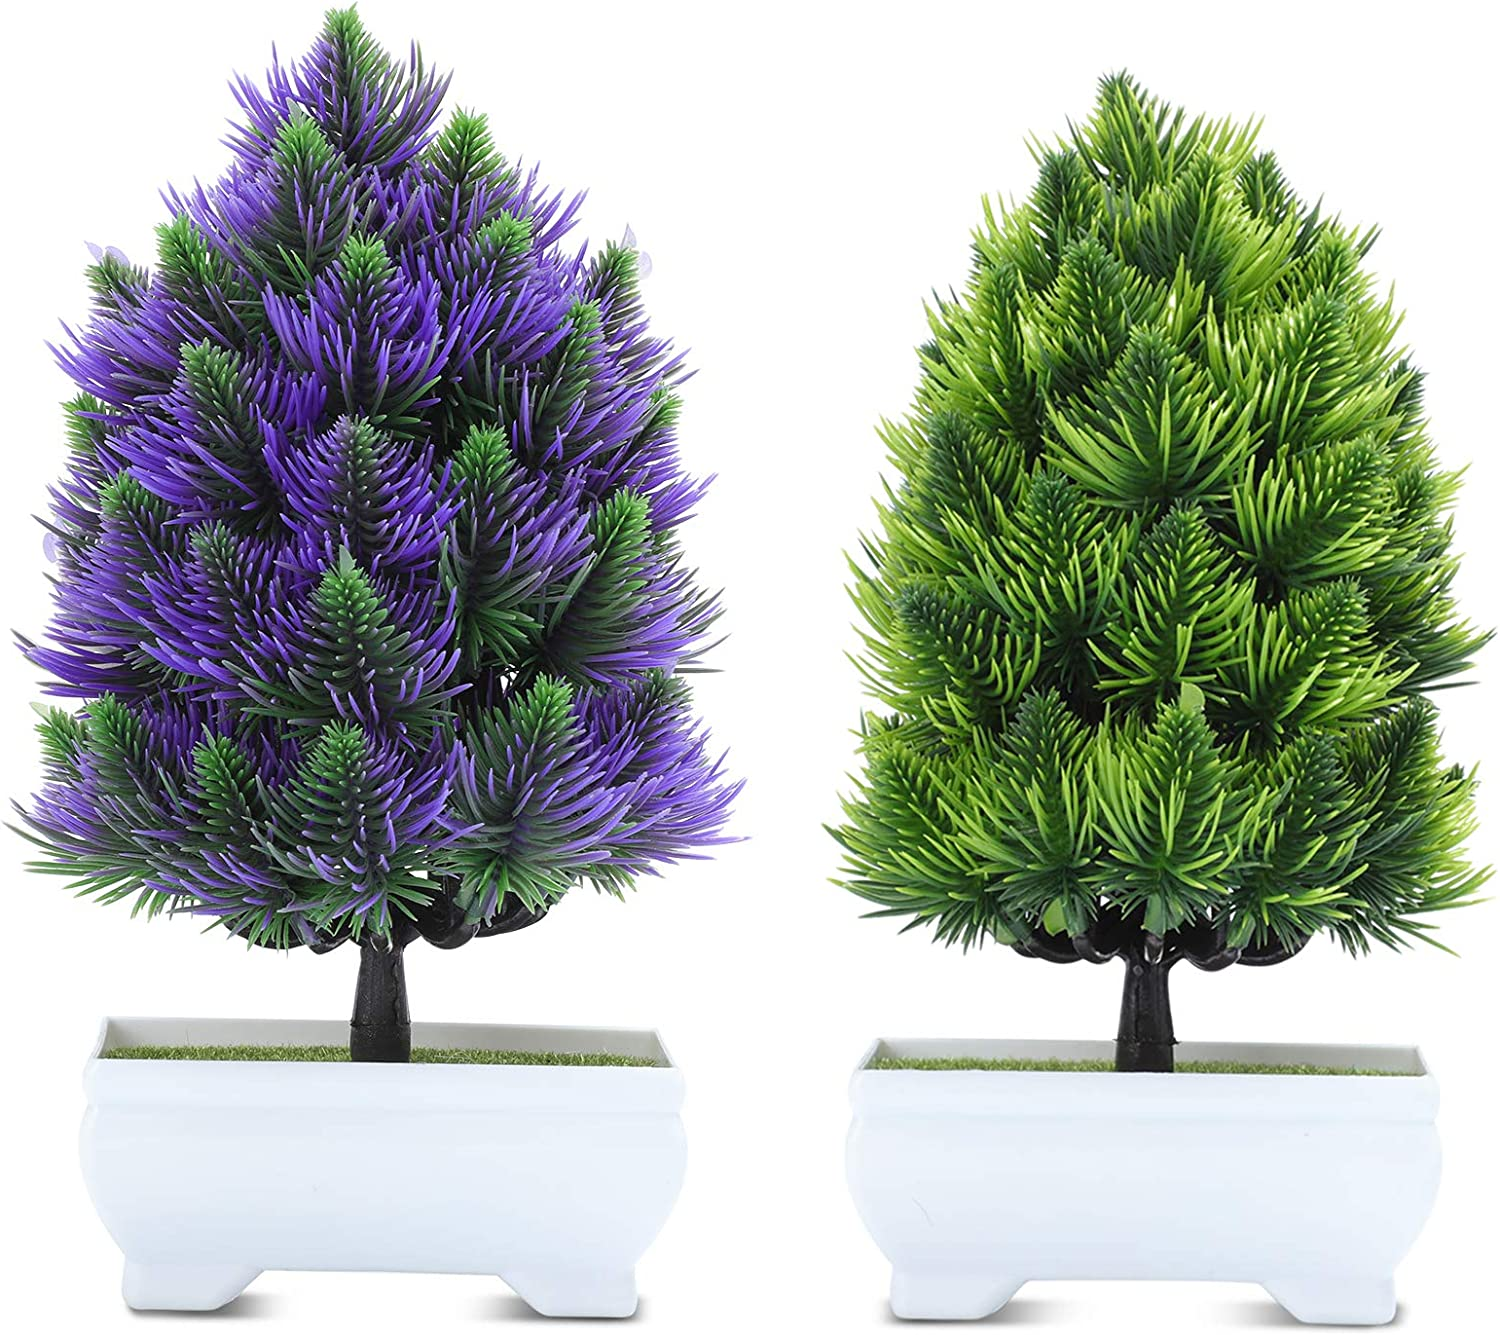 Max 76% OFF Green Decoration shopping Artificial Plants Small Realistic Potted Fake P